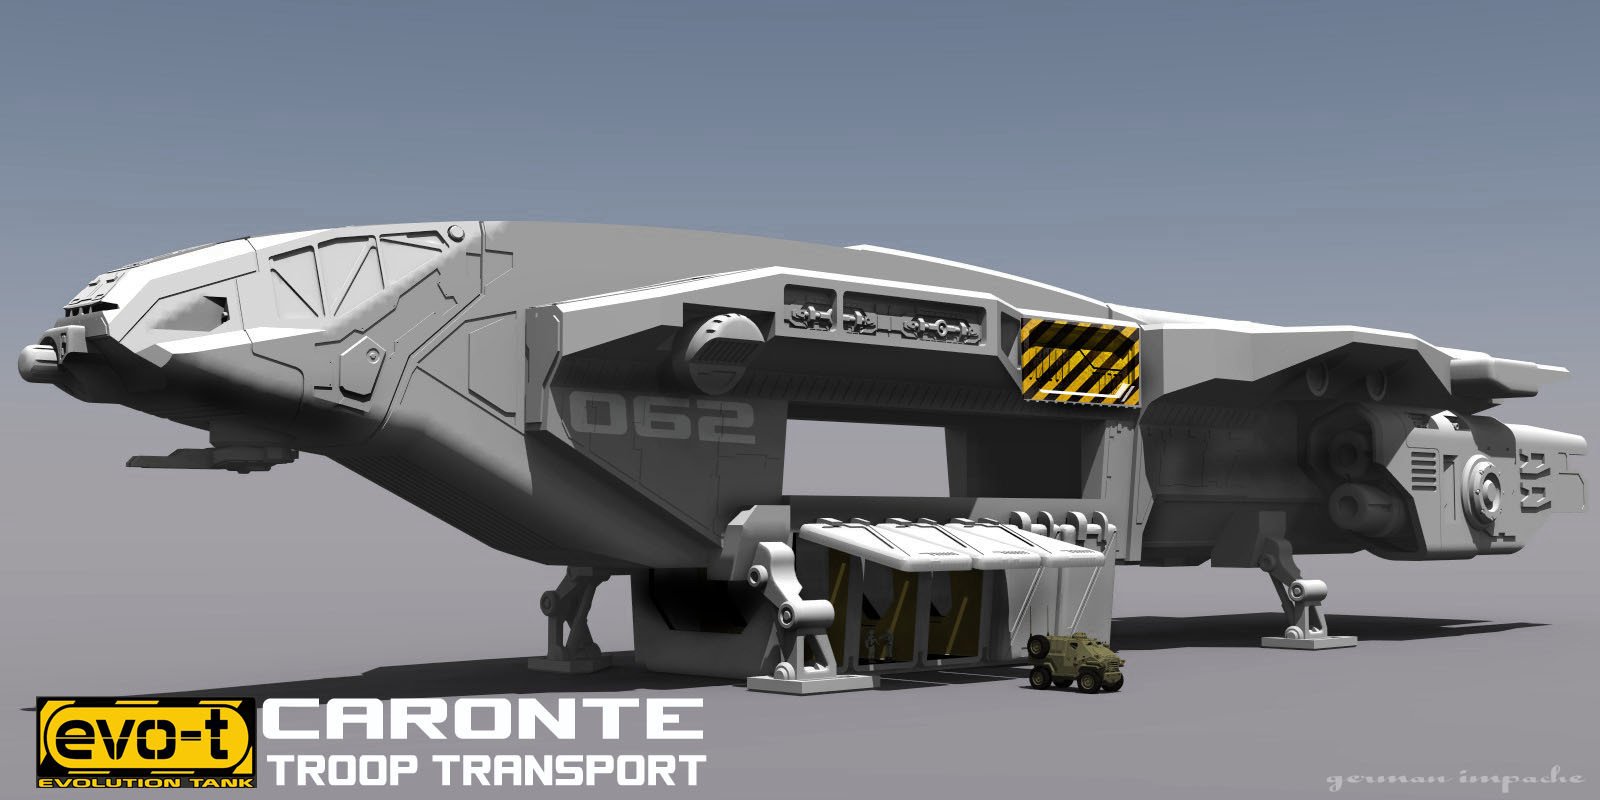 CARONTE Troop Transport